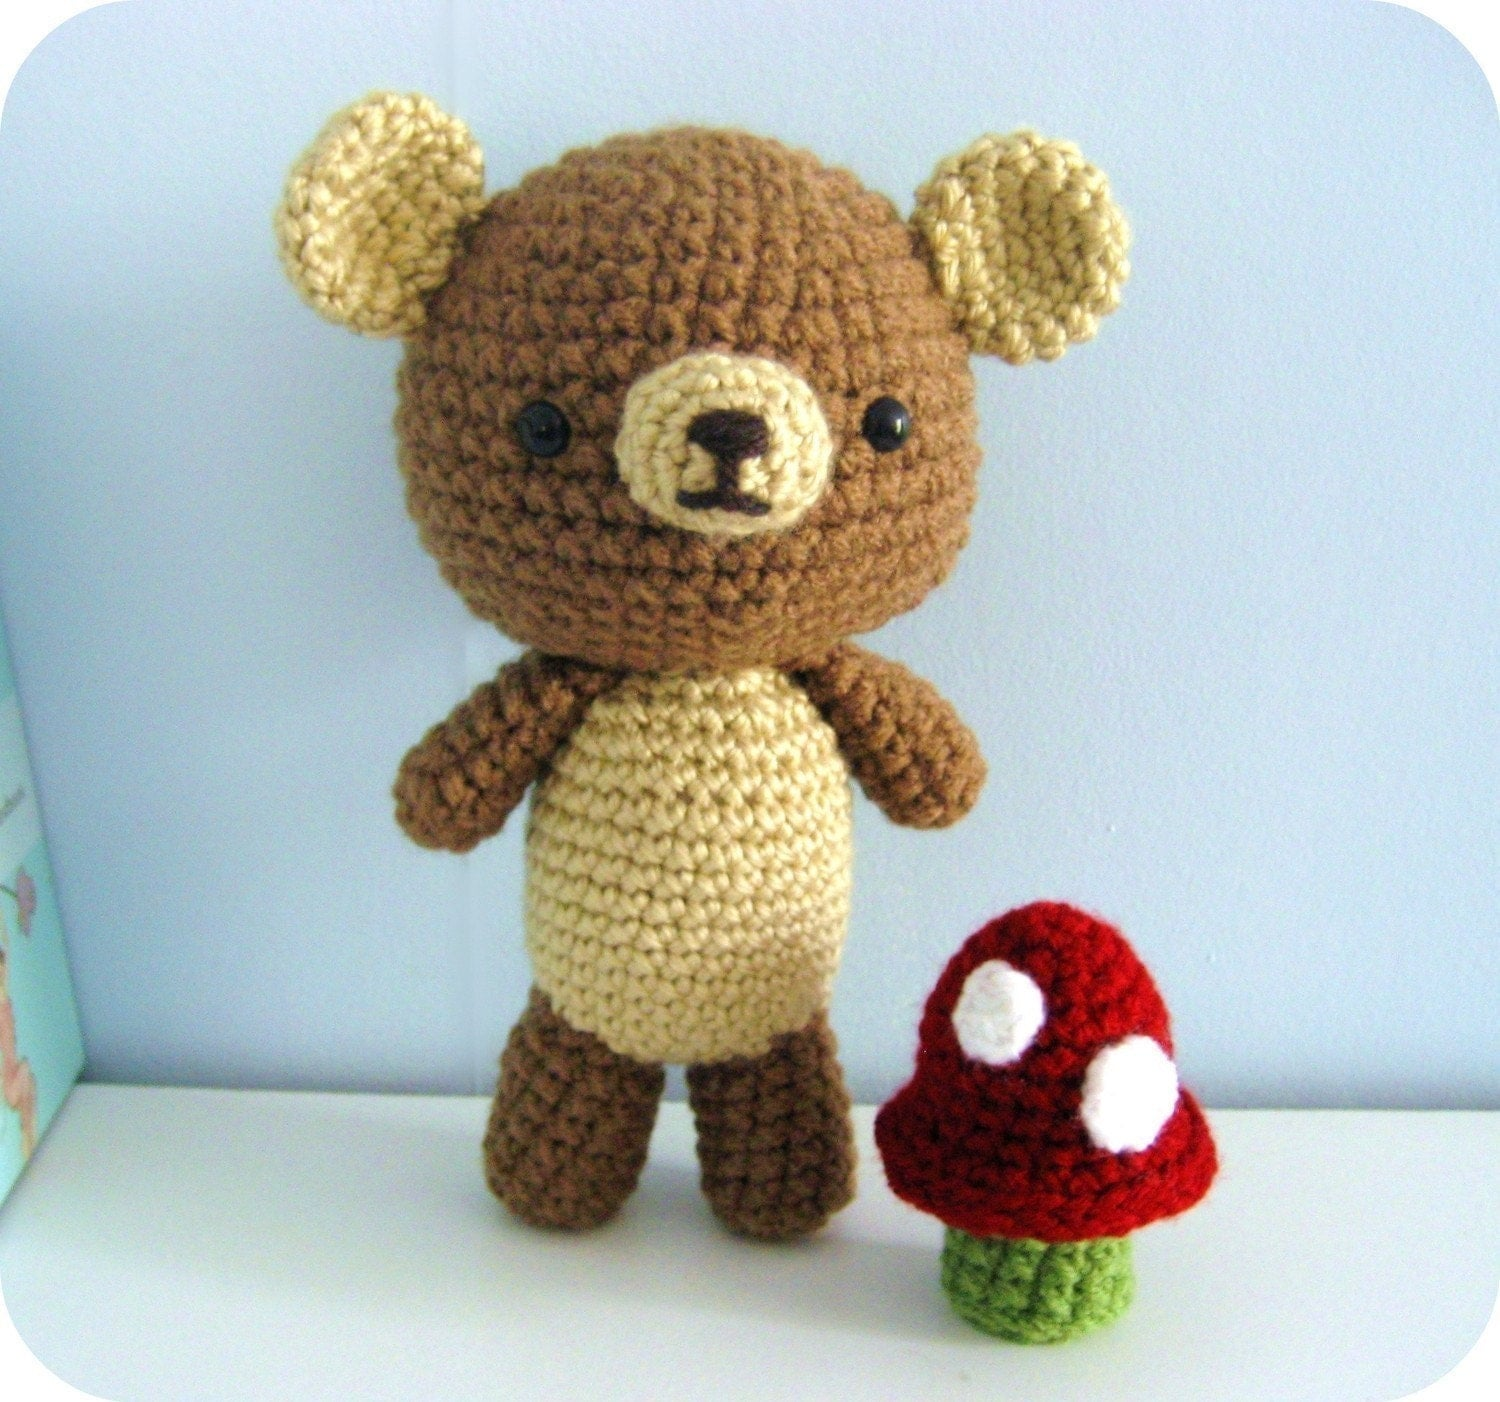 Crochet Pattern Amigurumi Bear : Amigurumi Crochet Bear and Mushroom Pattern Set Digital